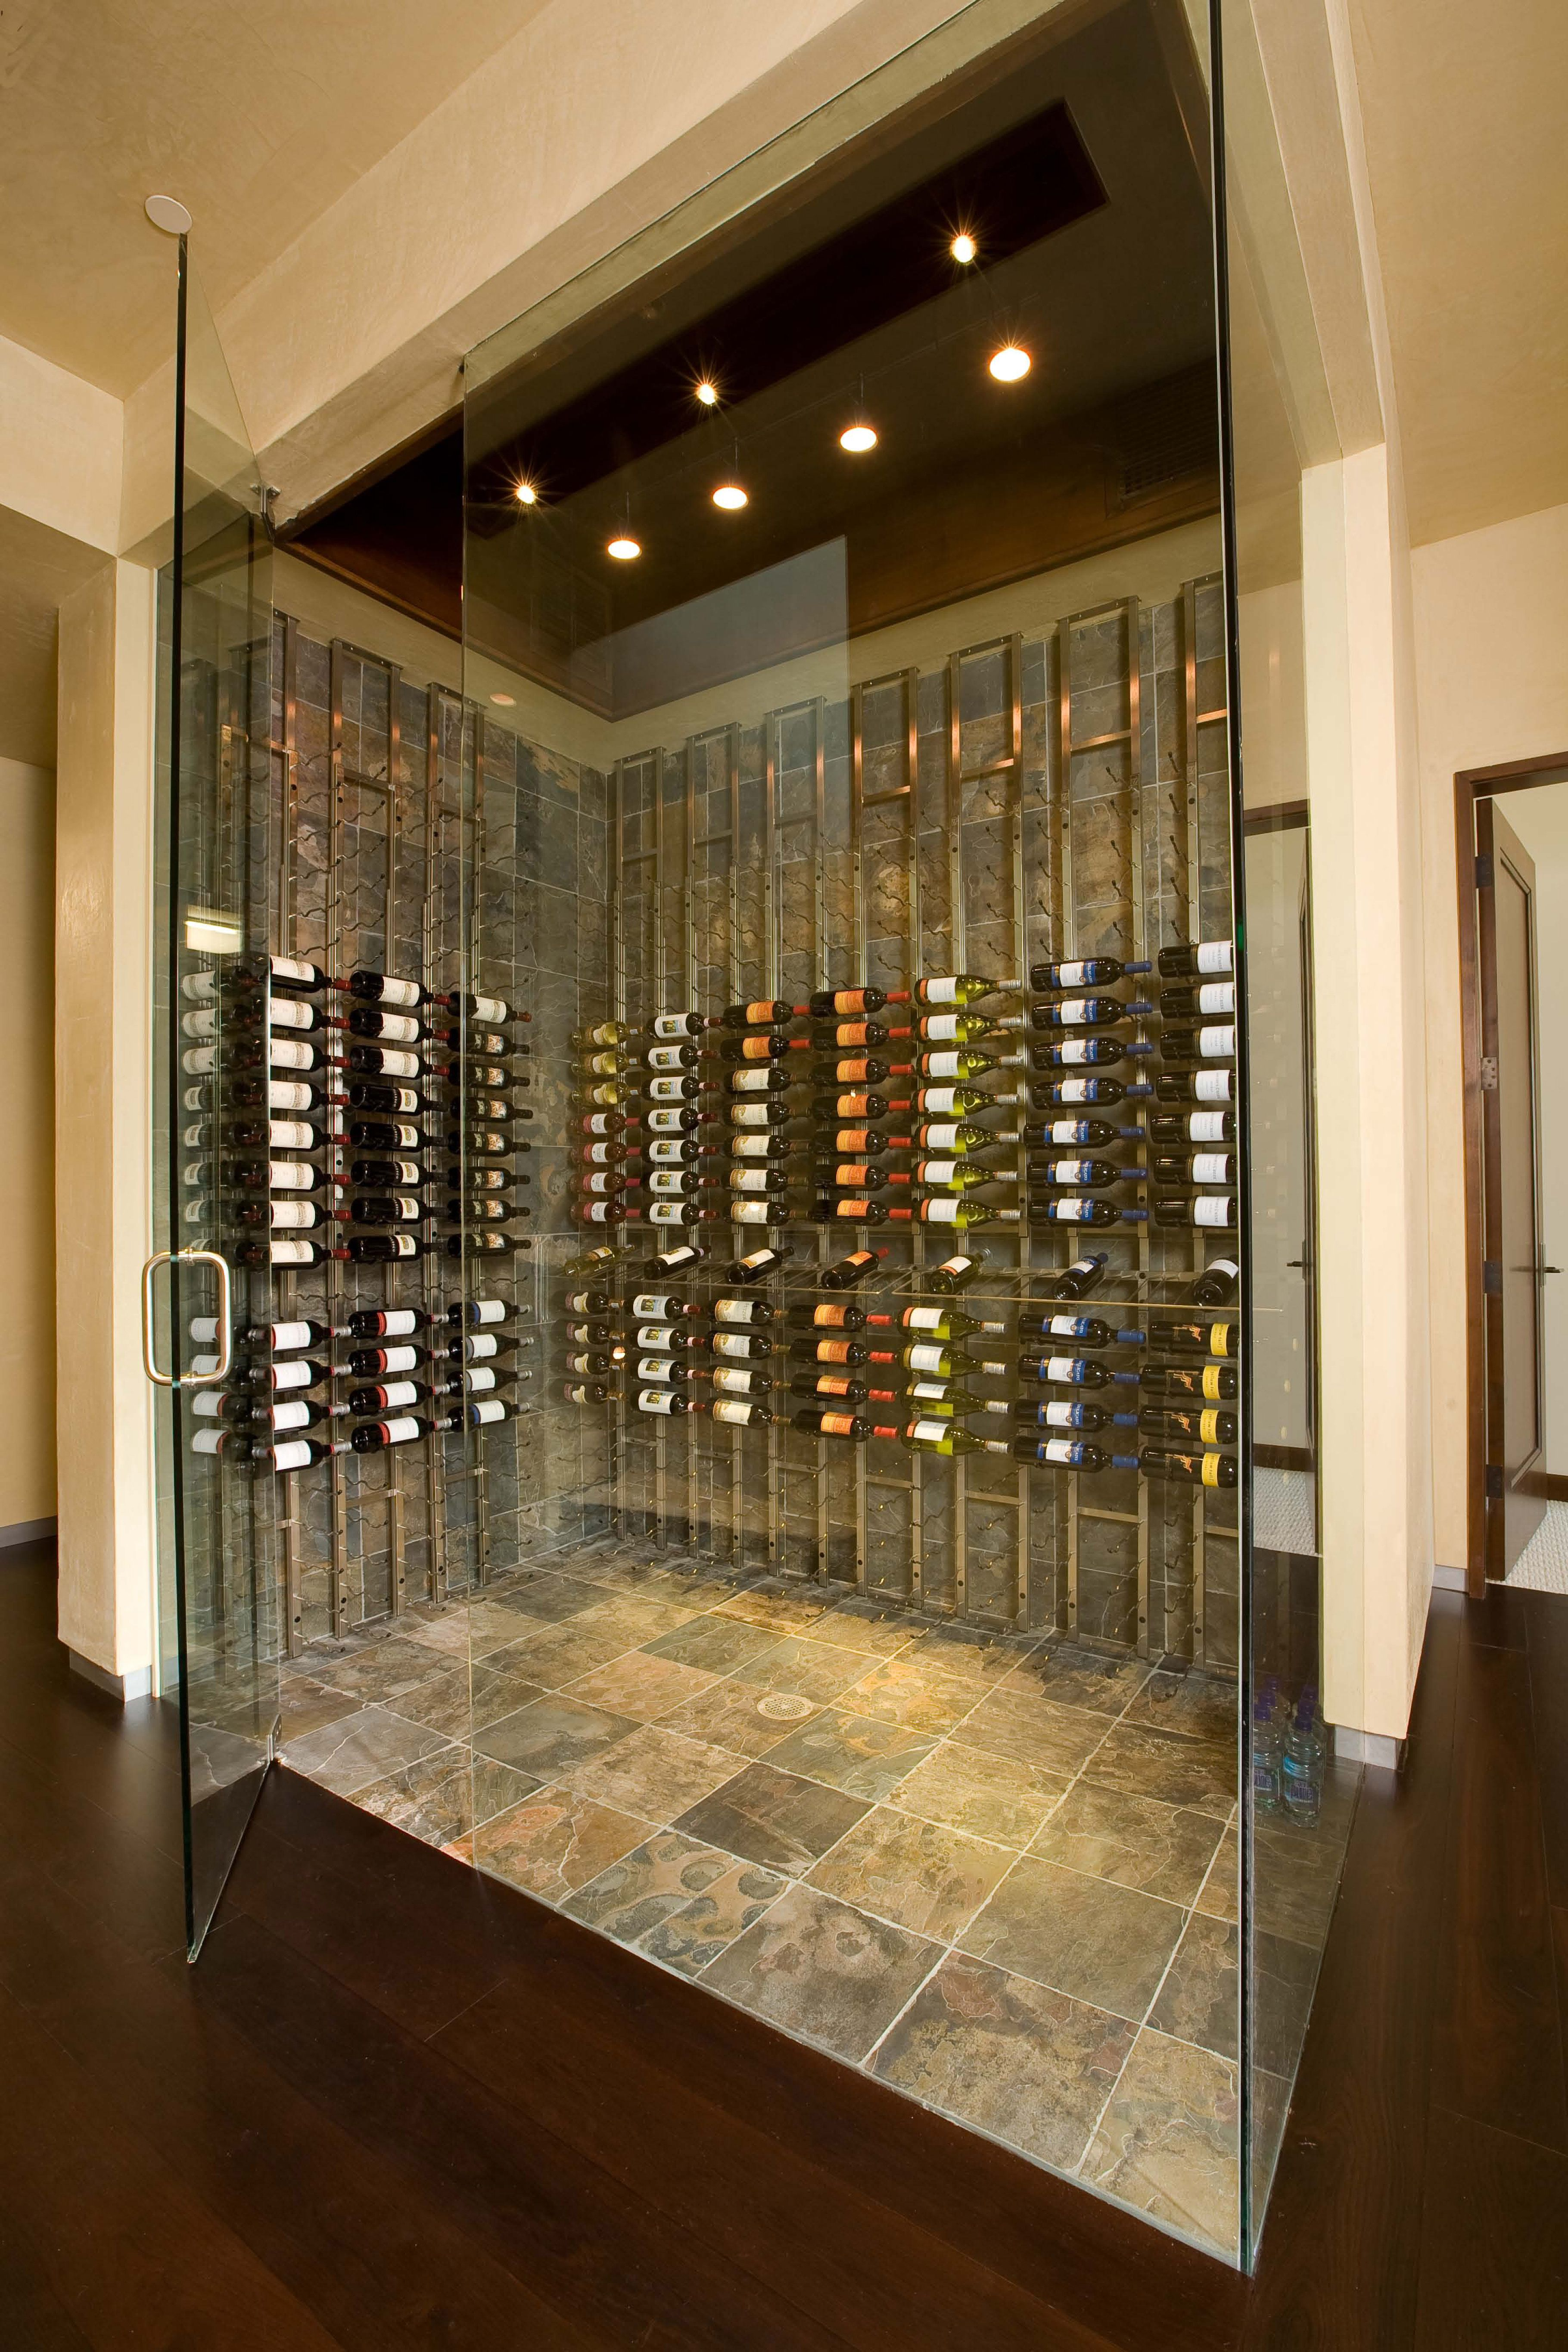 Seattle and Bellevue Custom Wine Cellars | Wine Racks u2022 Crafted in the foothills of the & Seattle and Bellevue Custom Wine Cellars | Wine Racks u2022 Crafted in ...